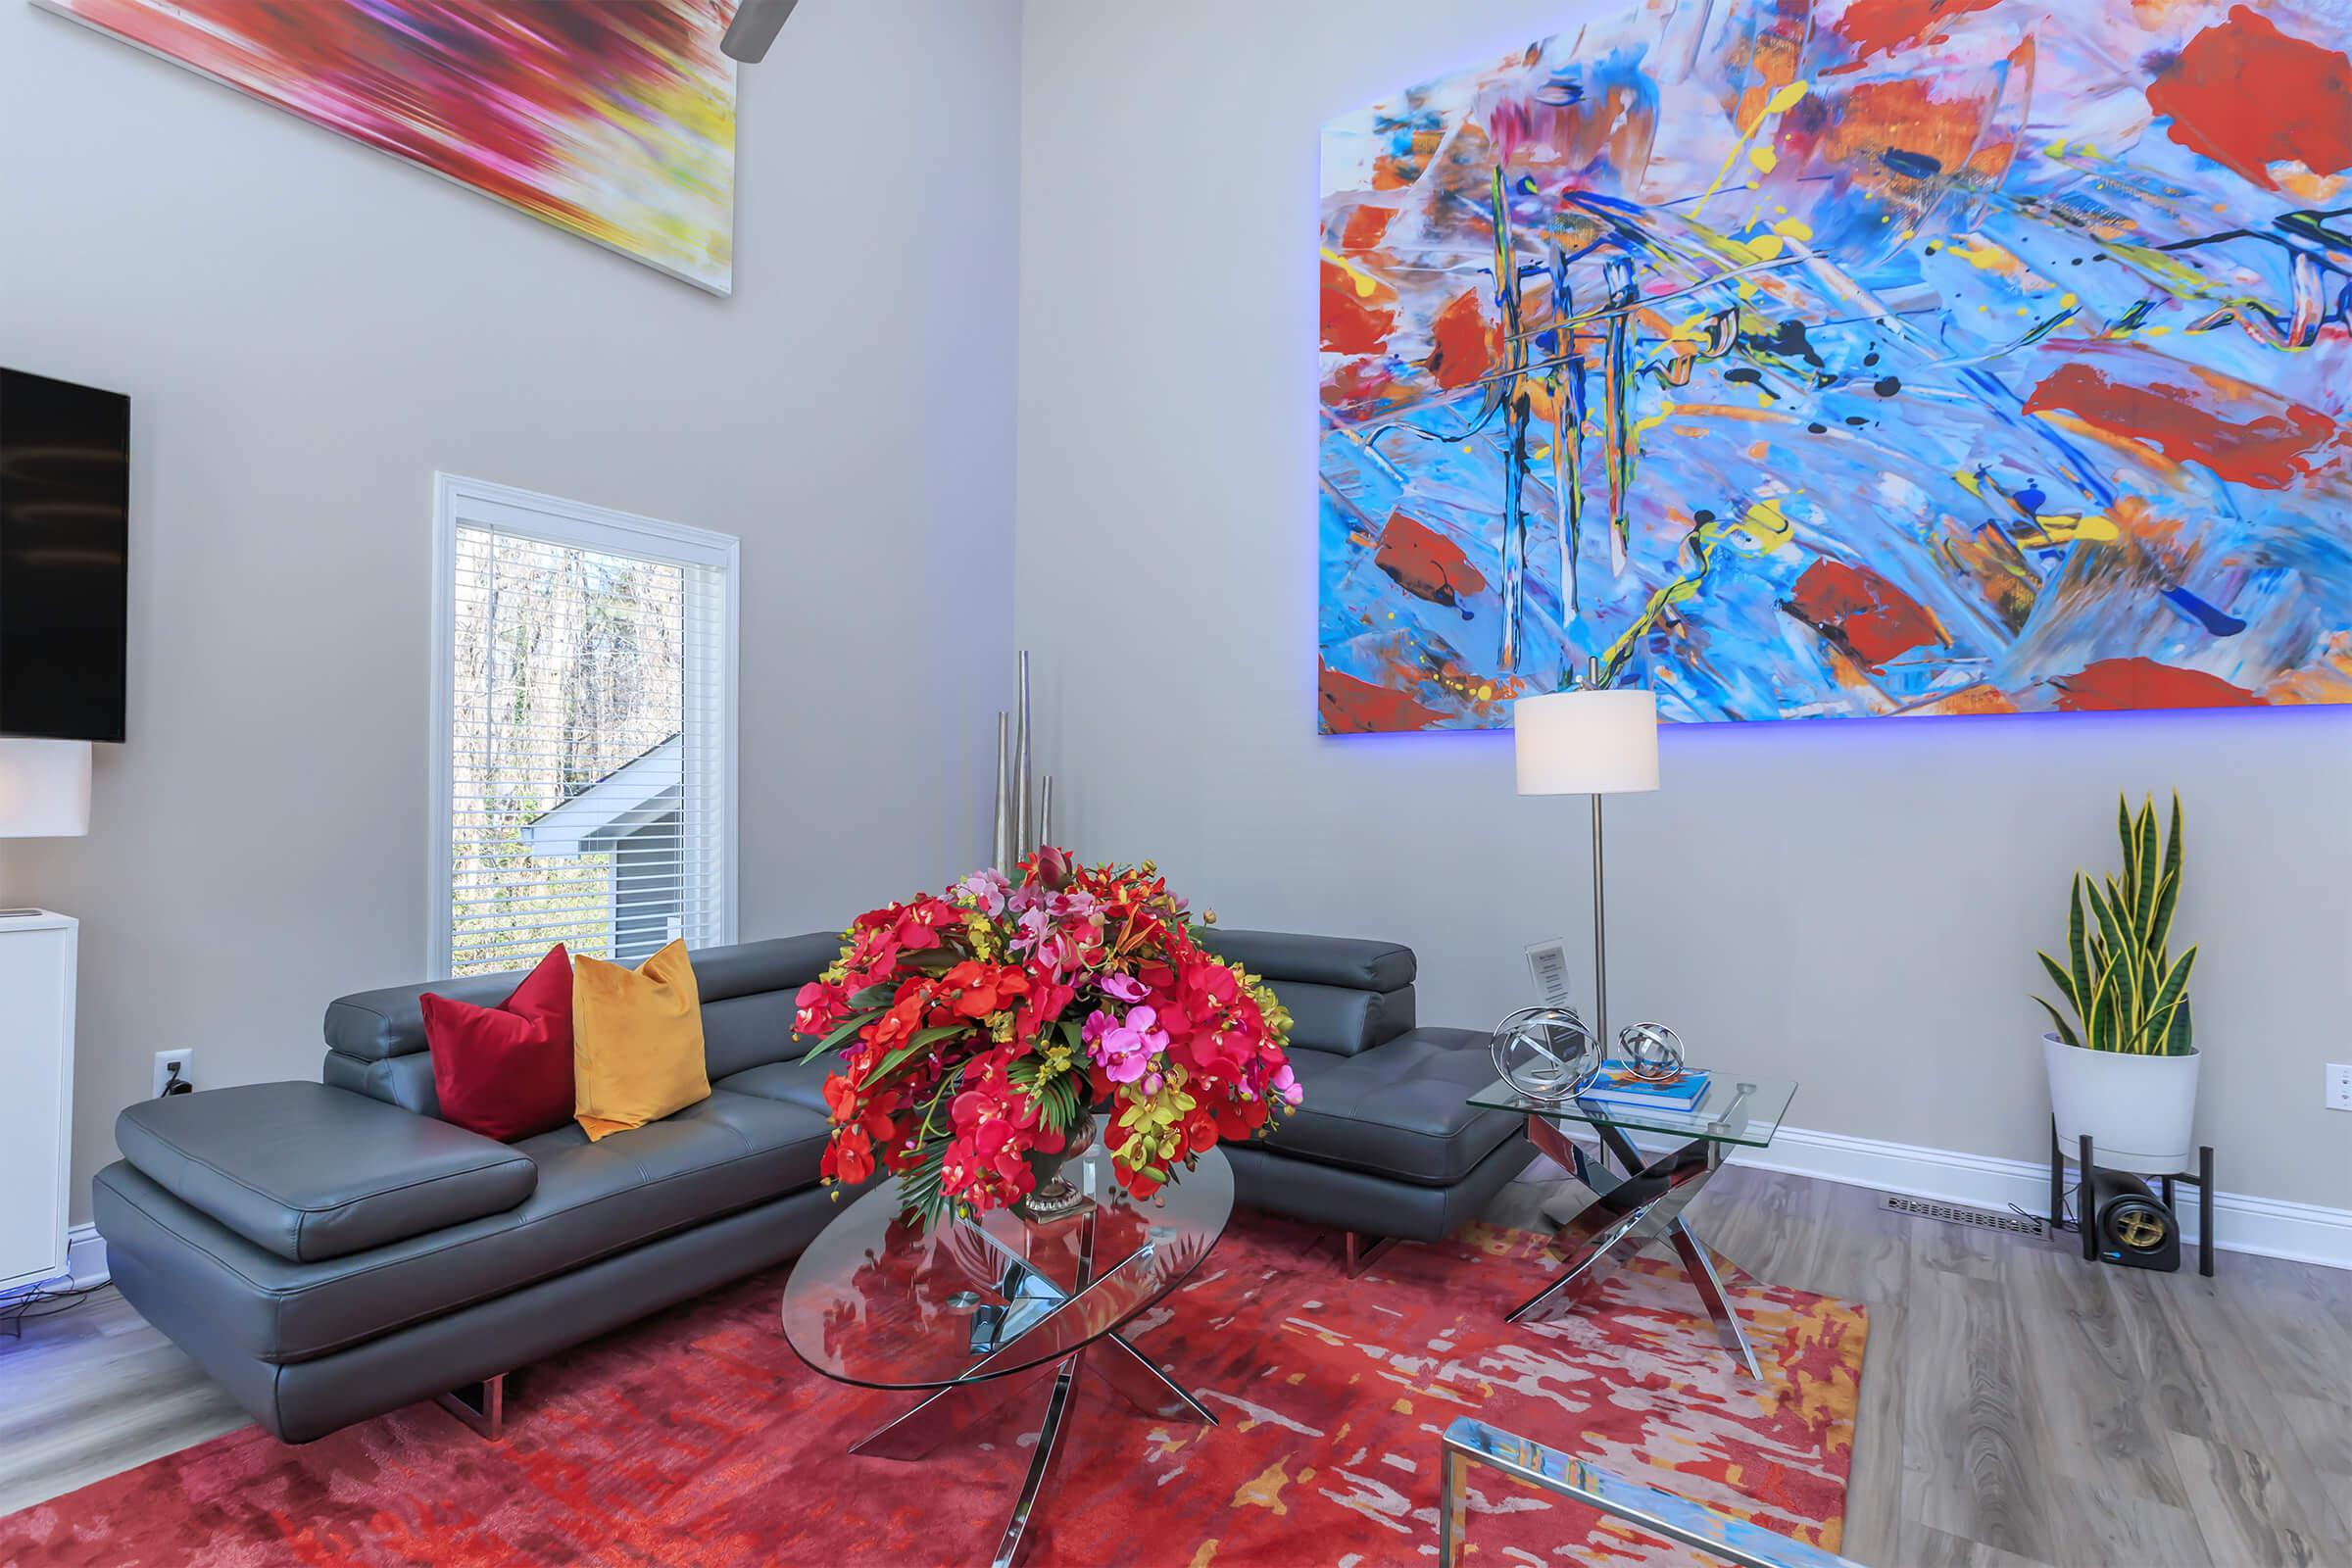 a living room filled with colorful flowers